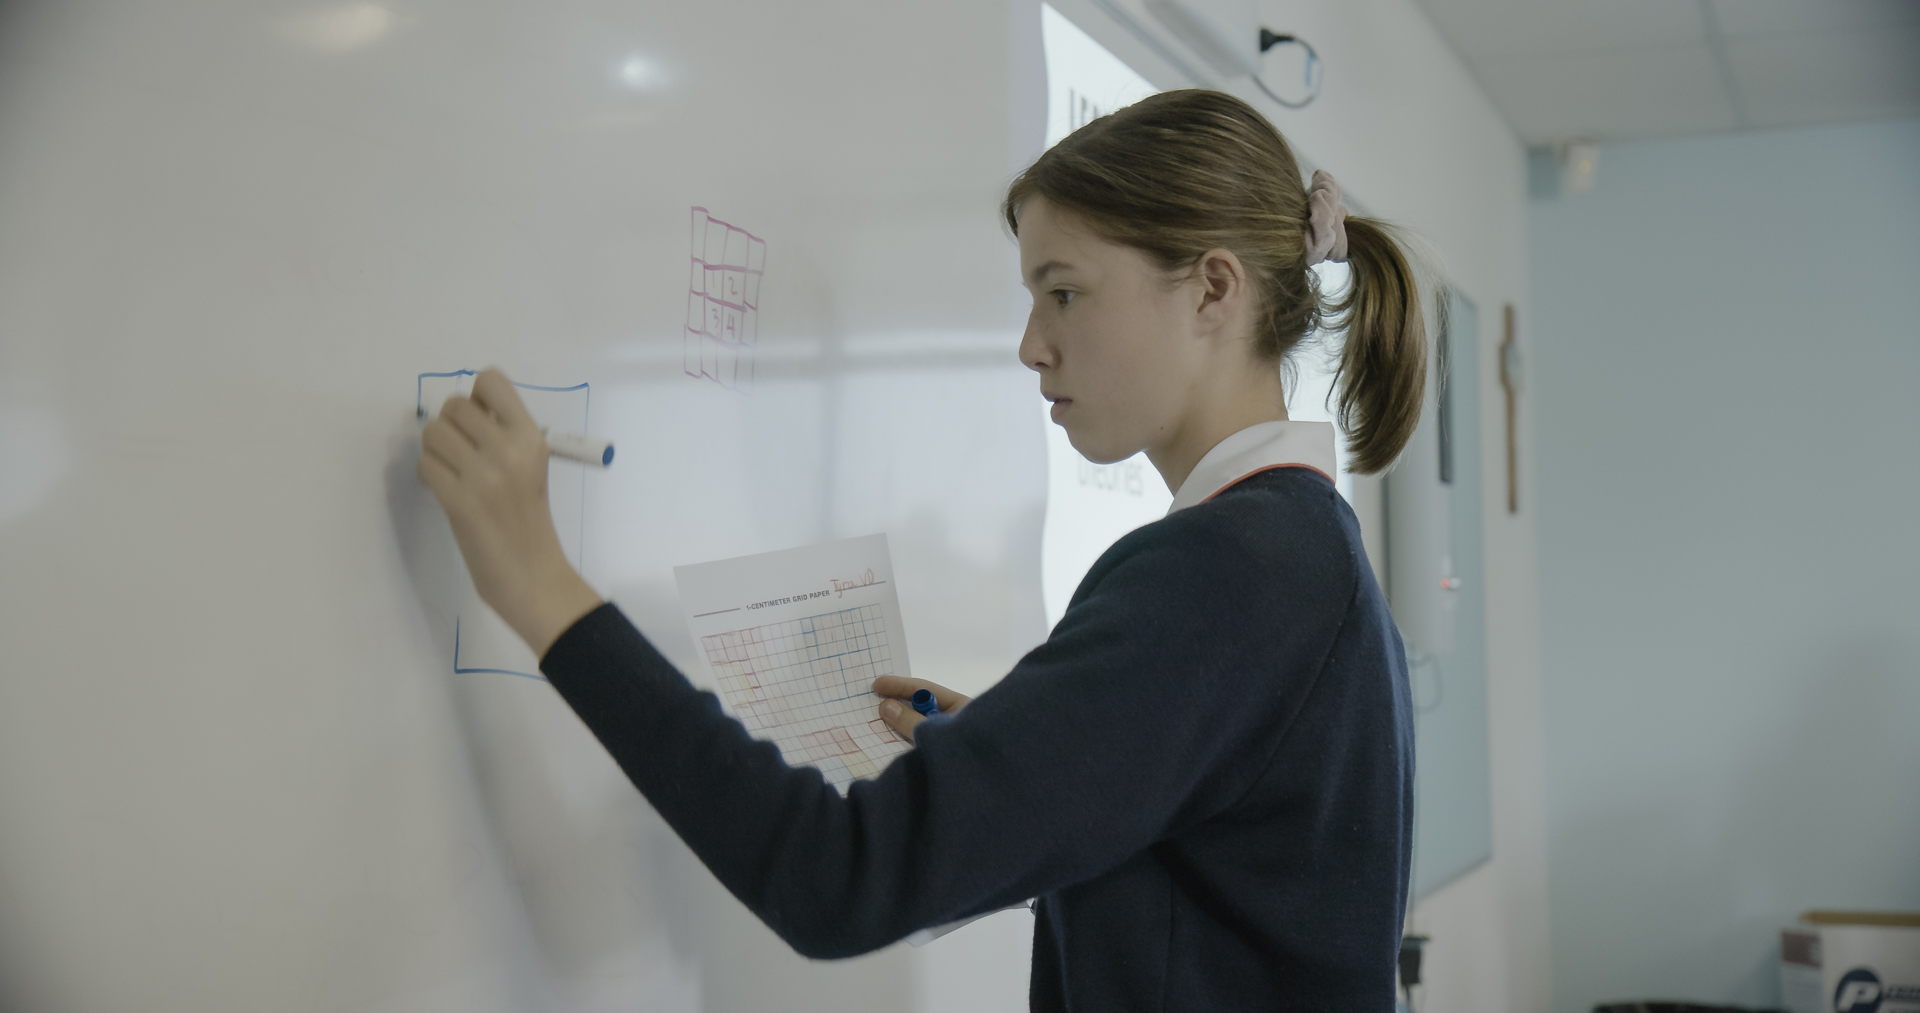 One girl draws a shape on the whiteboard, her face intense with focus.